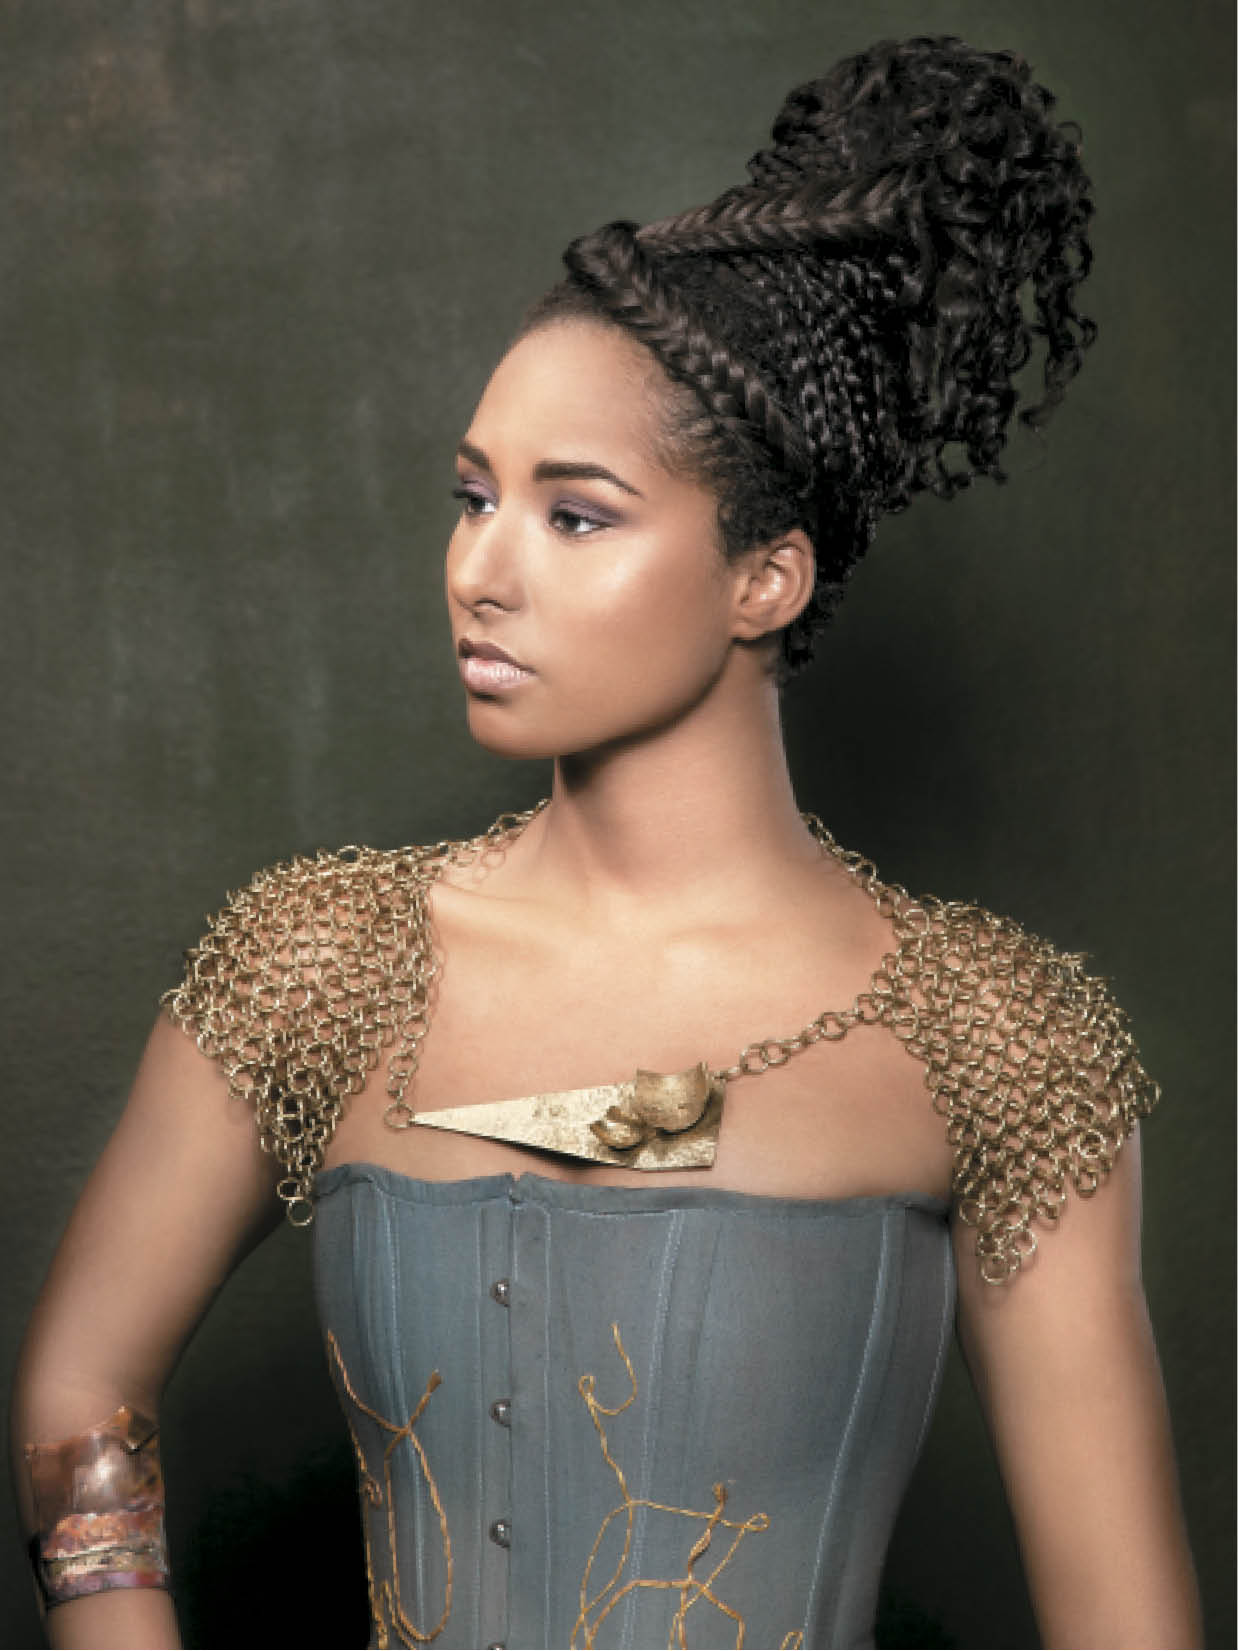 To achieve a braided updo, Sweet and Stokes finger-combed hair toward the crown and pinned it flat. Next, they sprayed the hair with water, covered it with fine tulle wrapped tightly to the head, and dried it. They pinned a donut mesh form at the crown as a base for tracks of textured hair extensions that were sewn into a cone shape. To finish, they added several braided extensions.